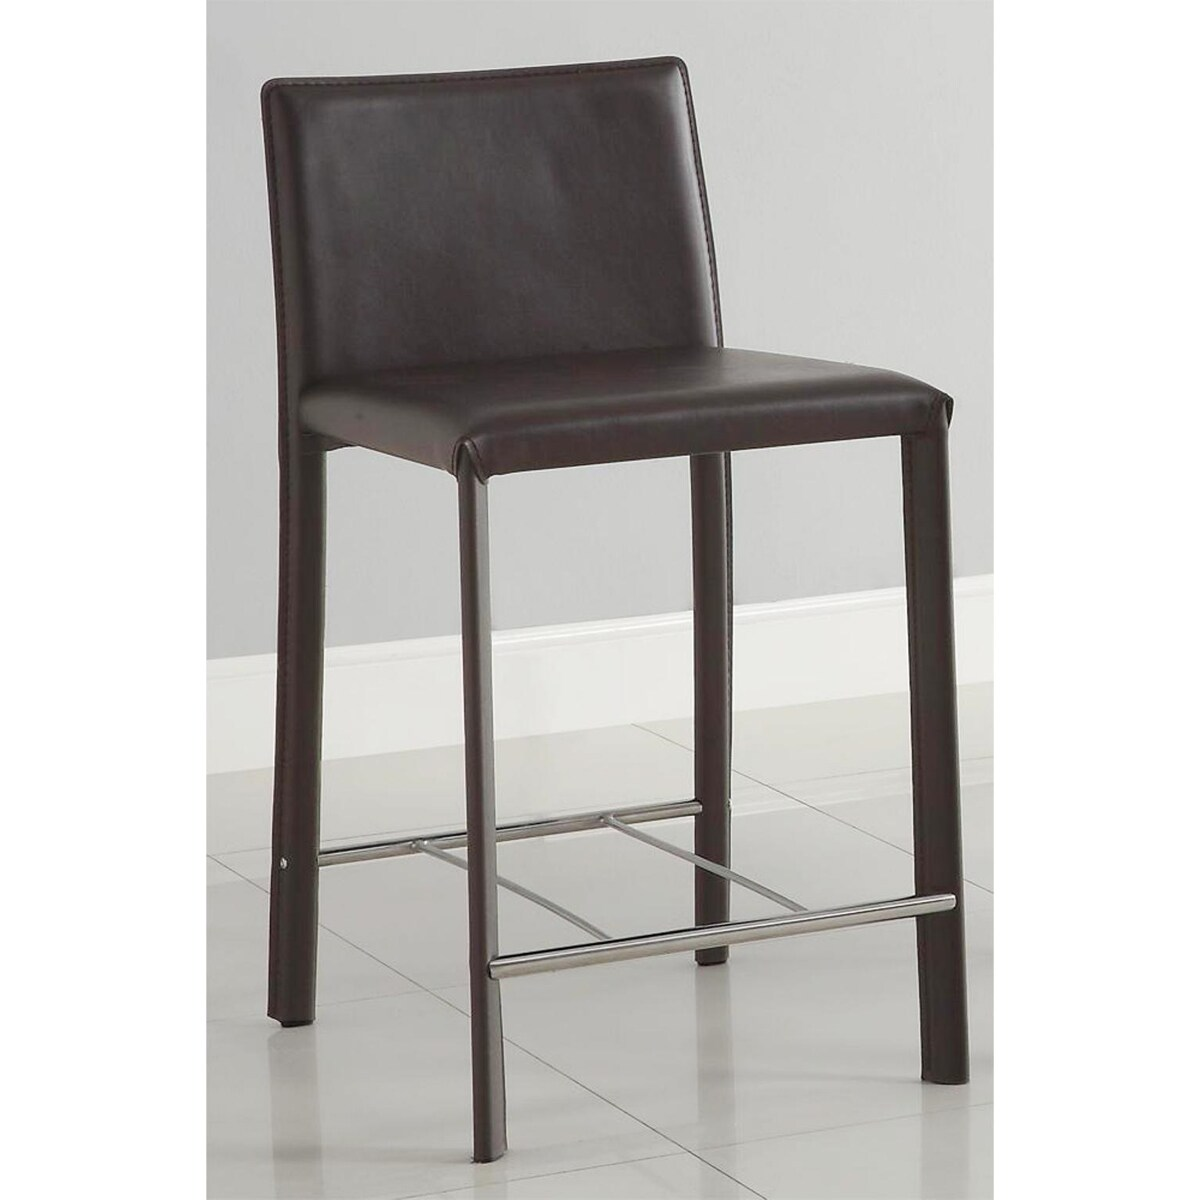 Euro Design Brown Bicast Leather Counter Stools (Set of 2)